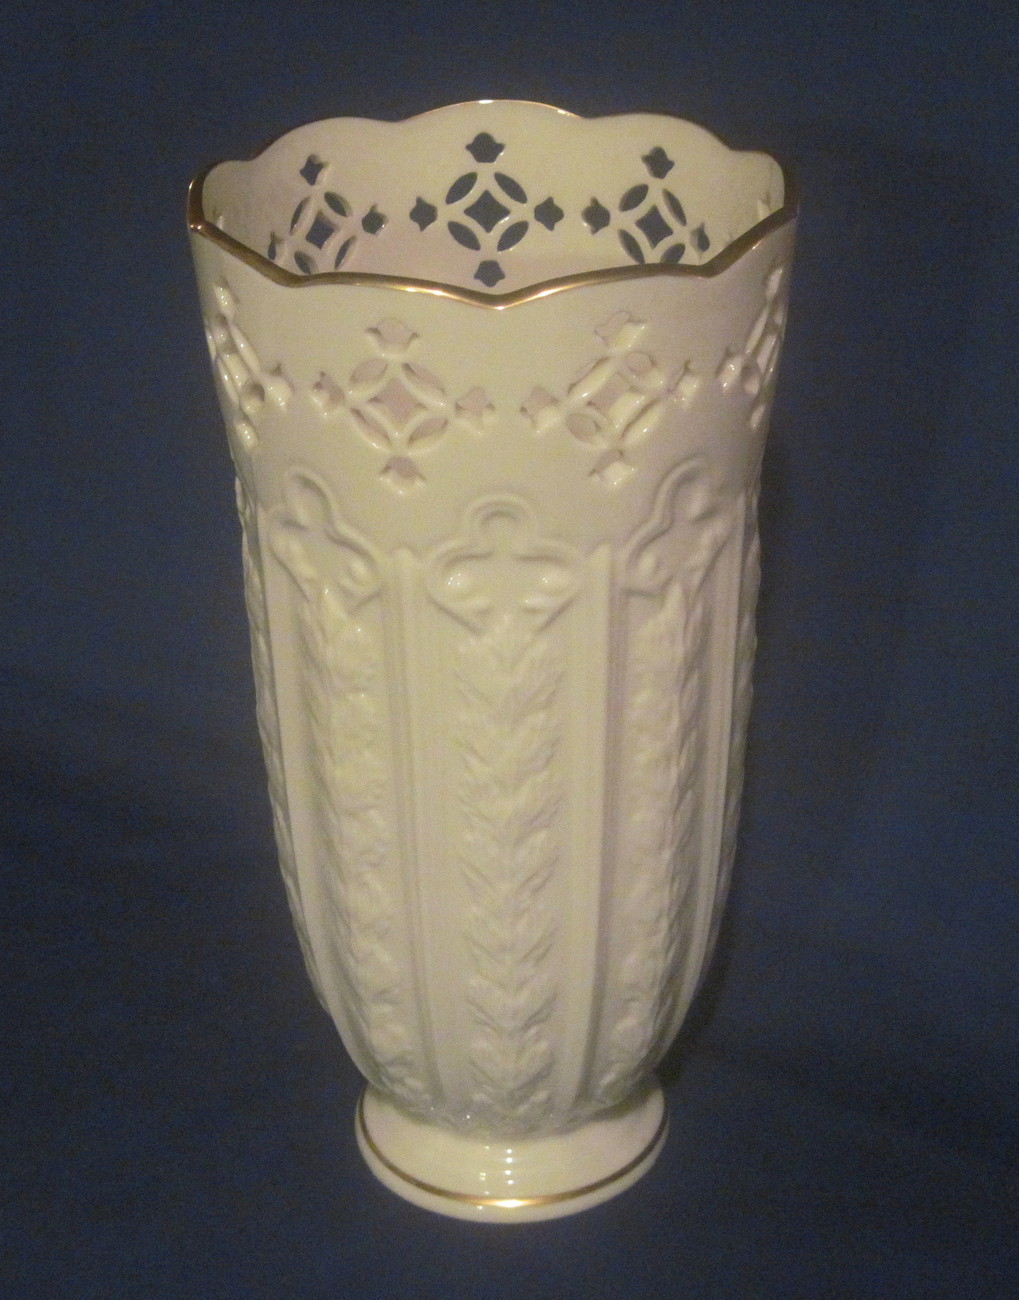 lenox fleur de lis pierced vase 9 5 inch ivory gold vases. Black Bedroom Furniture Sets. Home Design Ideas